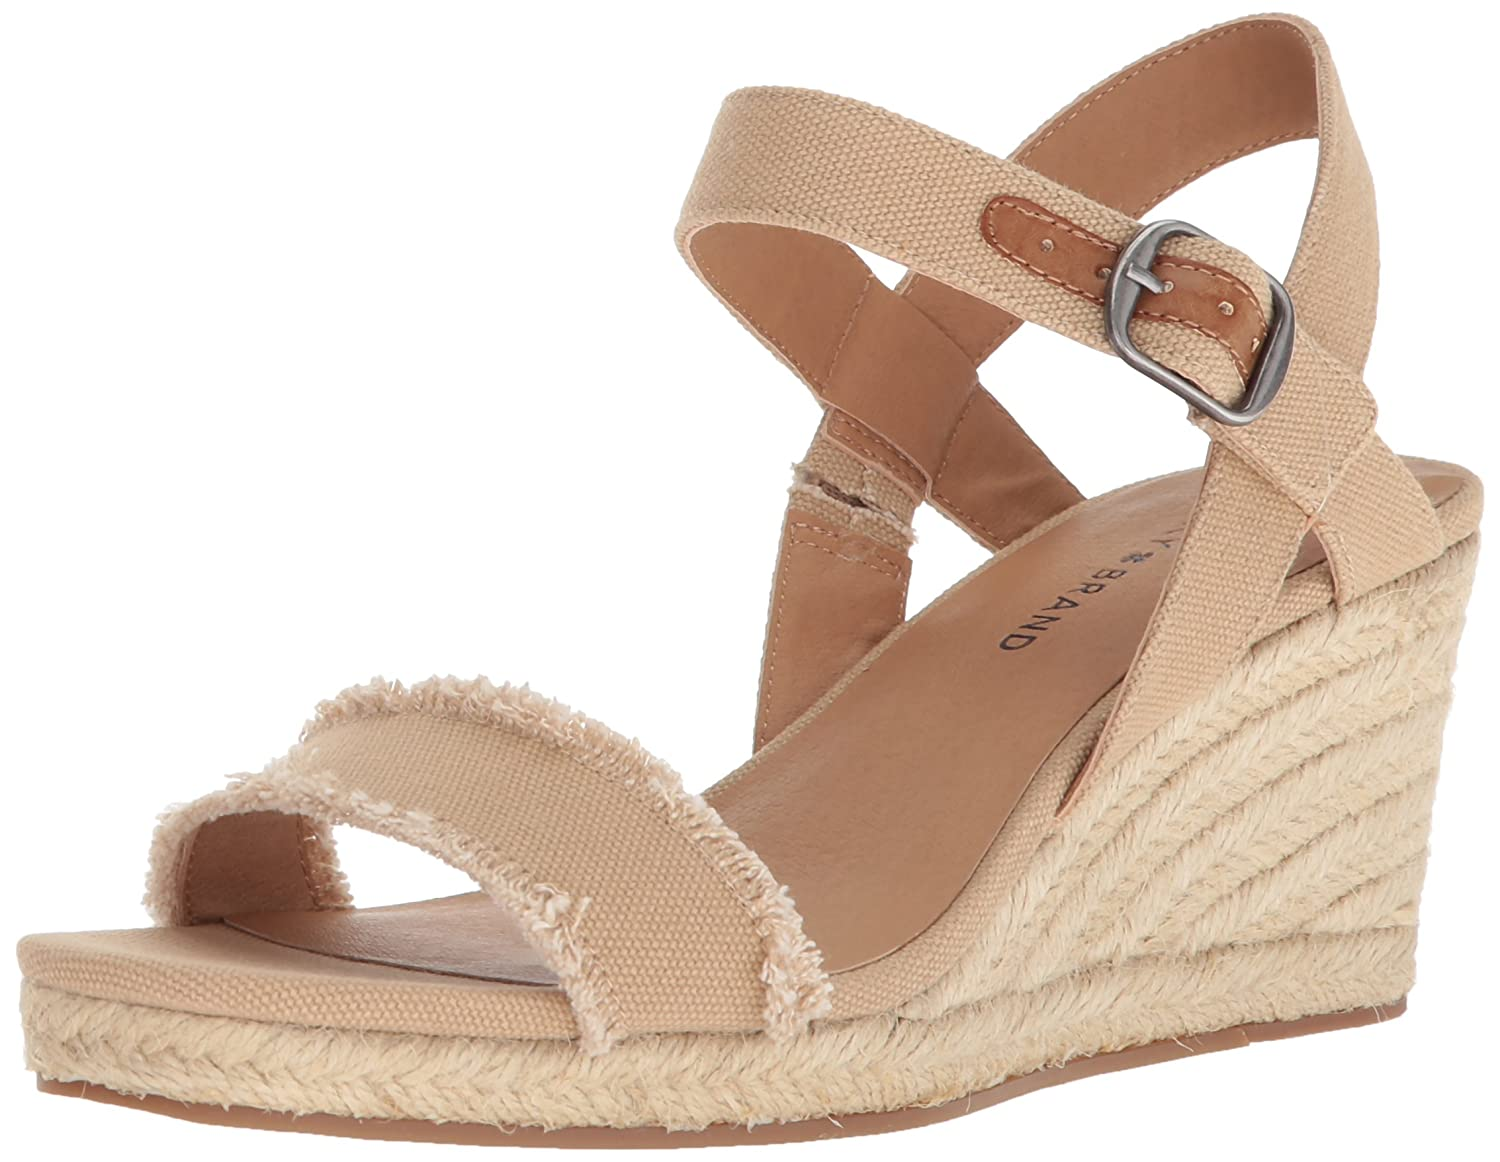 Lucky Brand Women's Marceline Espadrille Wedge Sandal B077G783JW 8 M US|Travertine